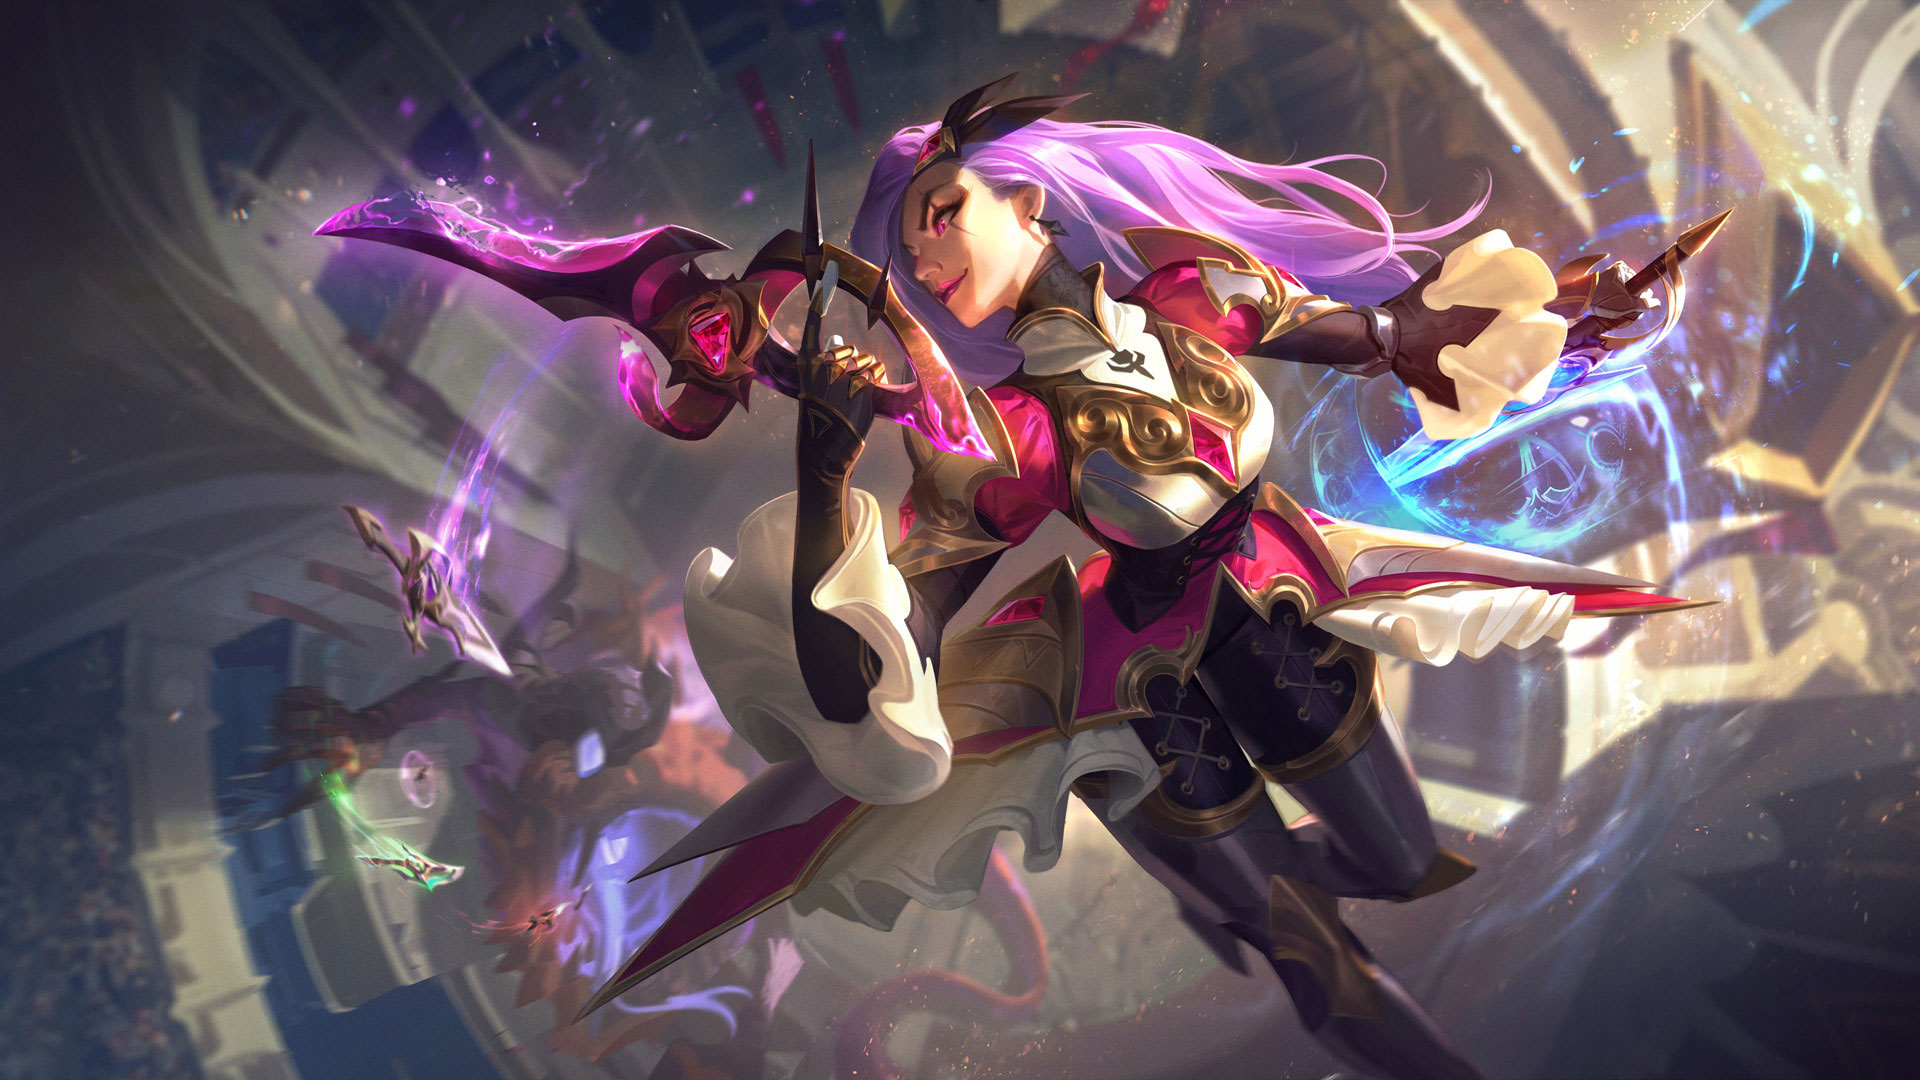 Battle_Queen_Katarina_Splash.jpg